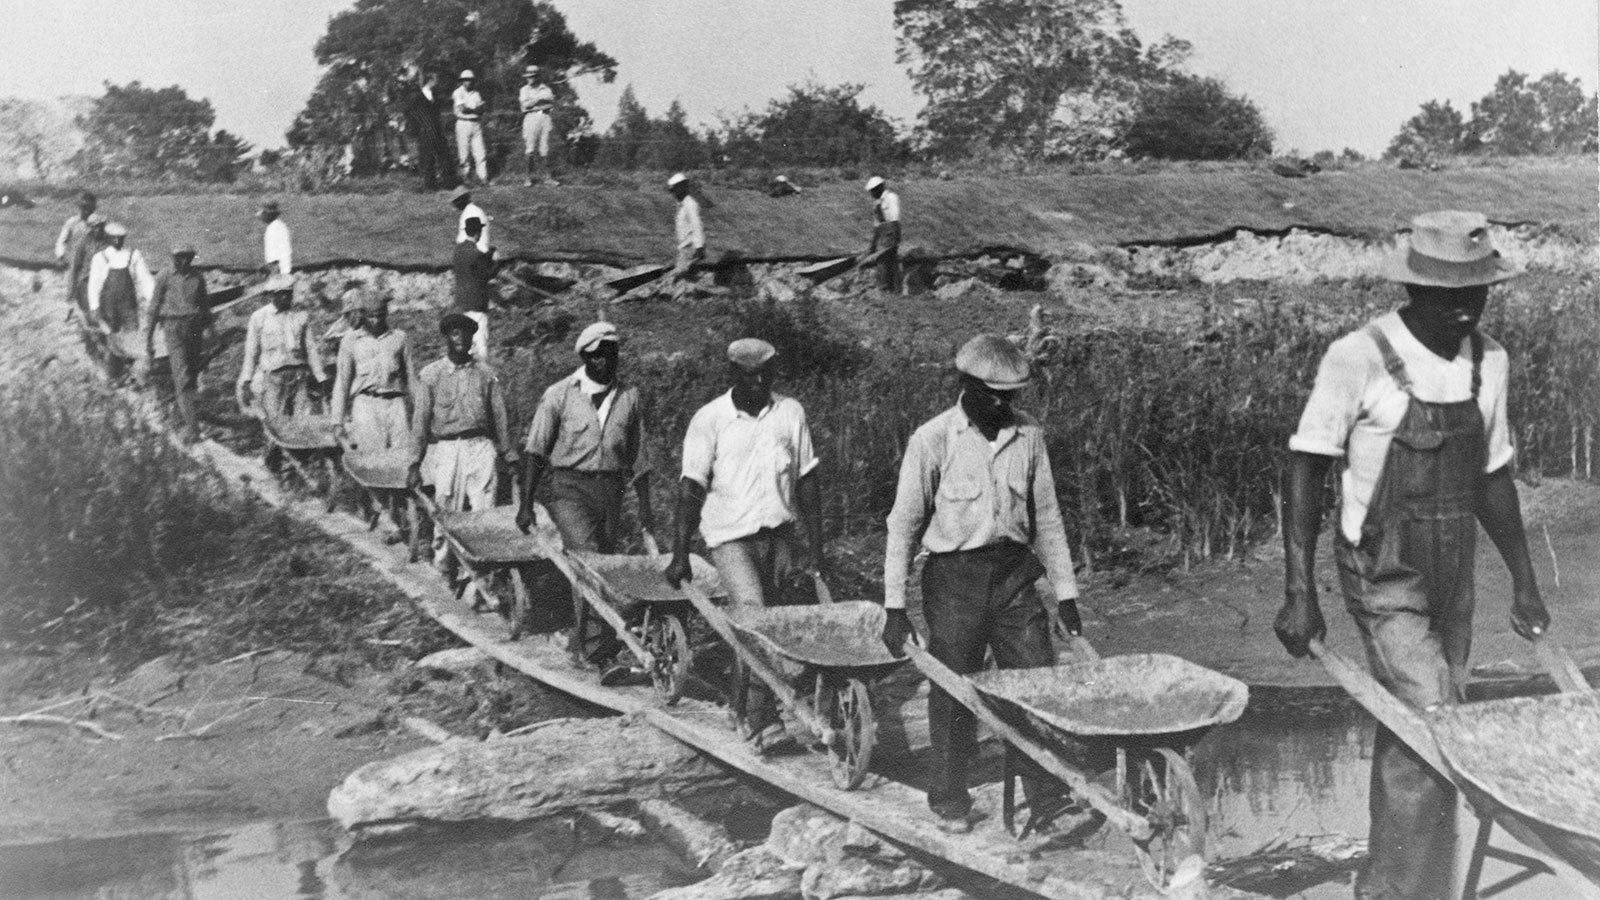 Workers build a levee in Plaquemine Parish, just south of New Orleans, Louisiana, in 1935